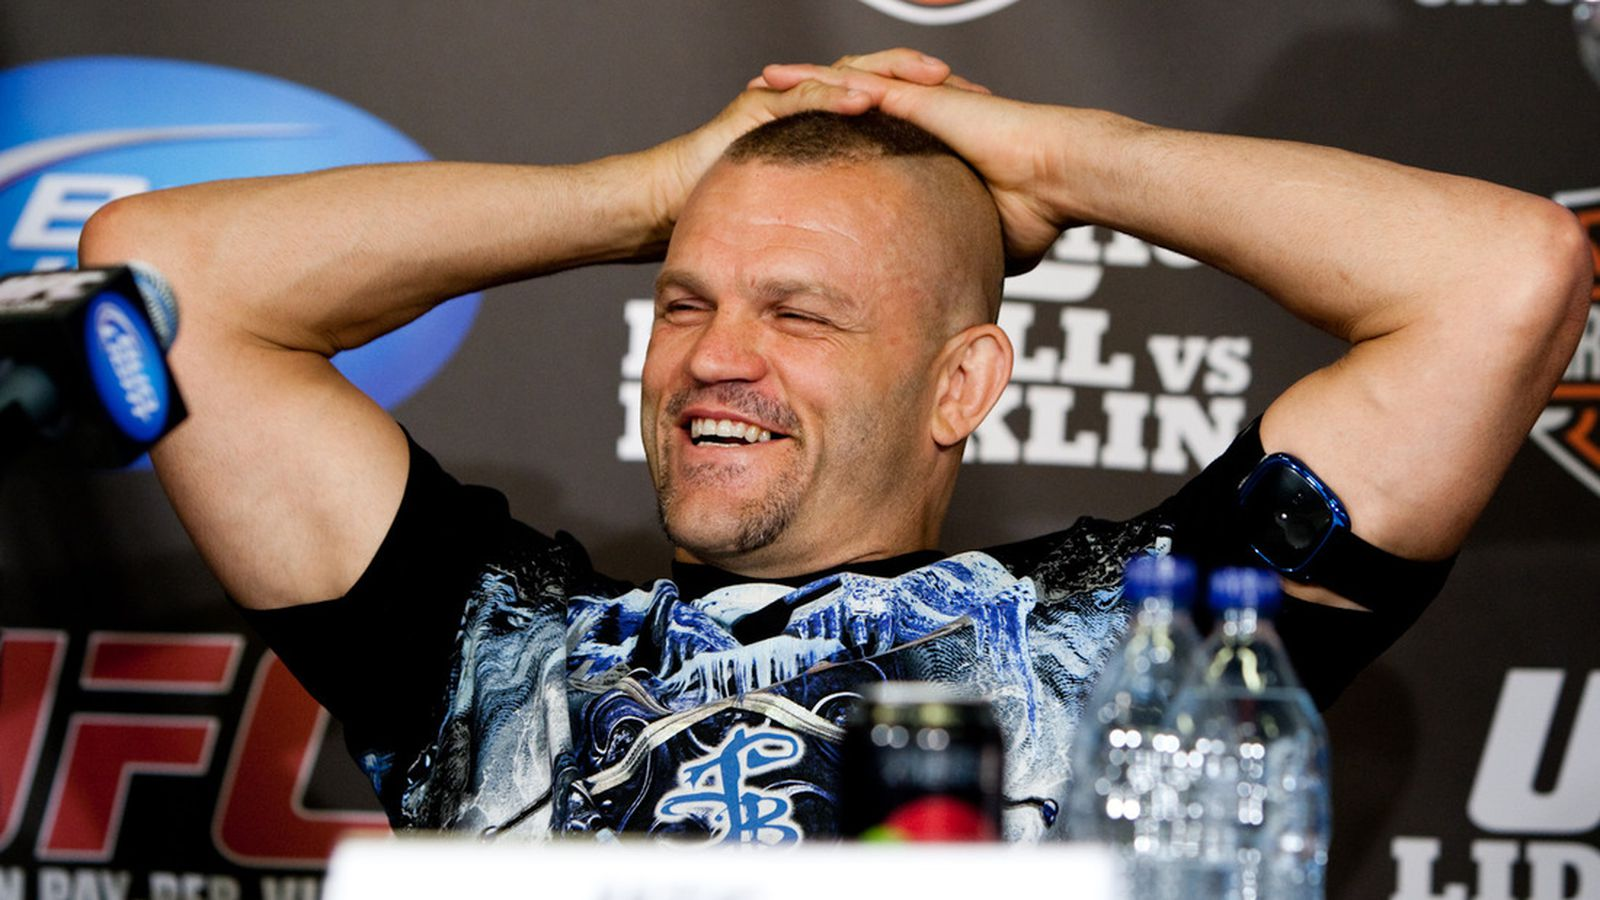 7f6fd68c595e51 Chuck Liddell unloads on  piece of sh t  Tito Ortiz over social media  (updated) - MMA Fighting